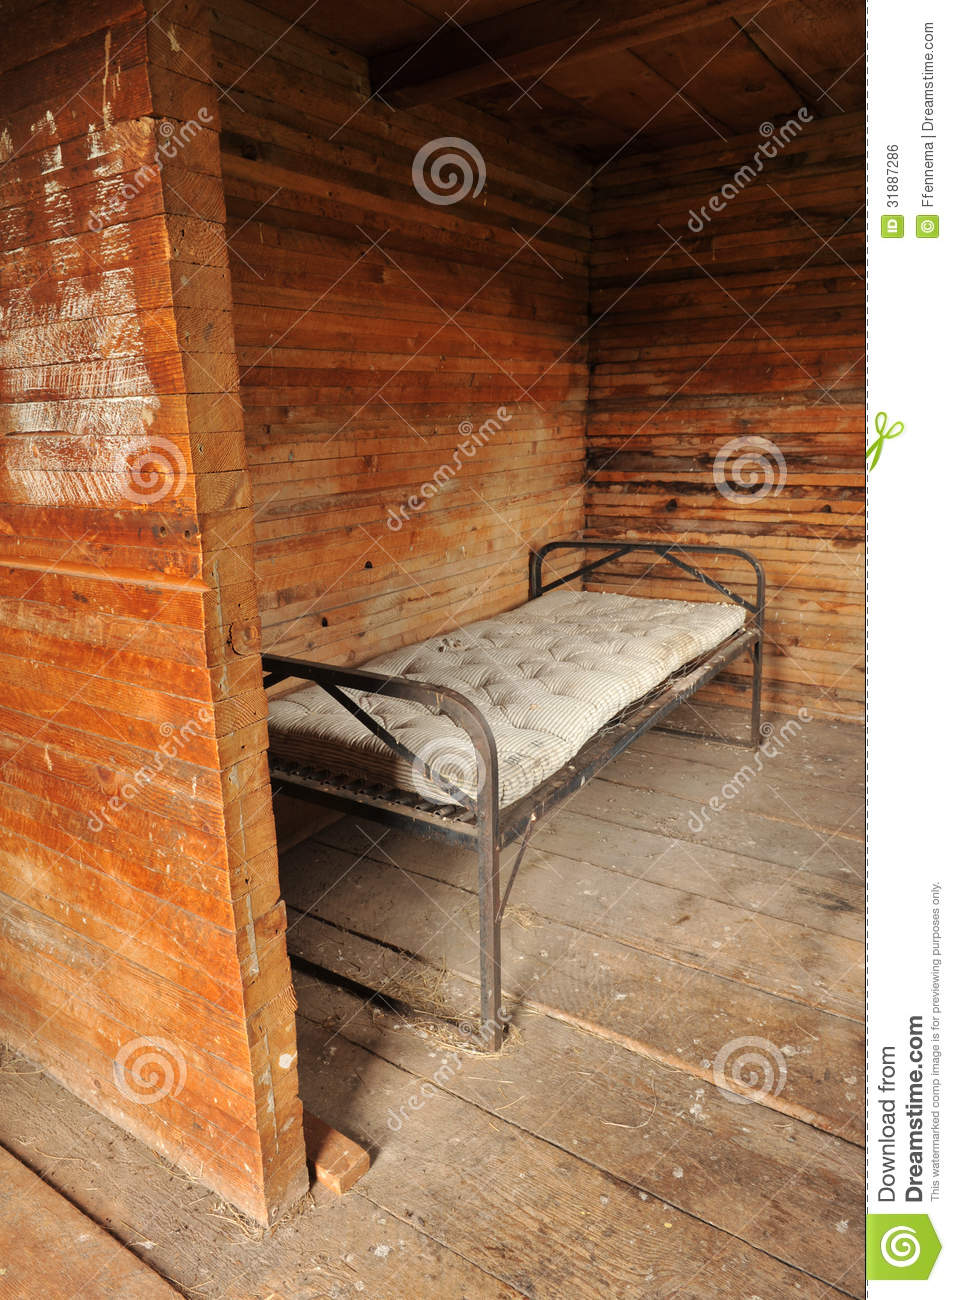 Room With A Metal Bed Frame And Old Mattress Royalty Free Stock Image ...